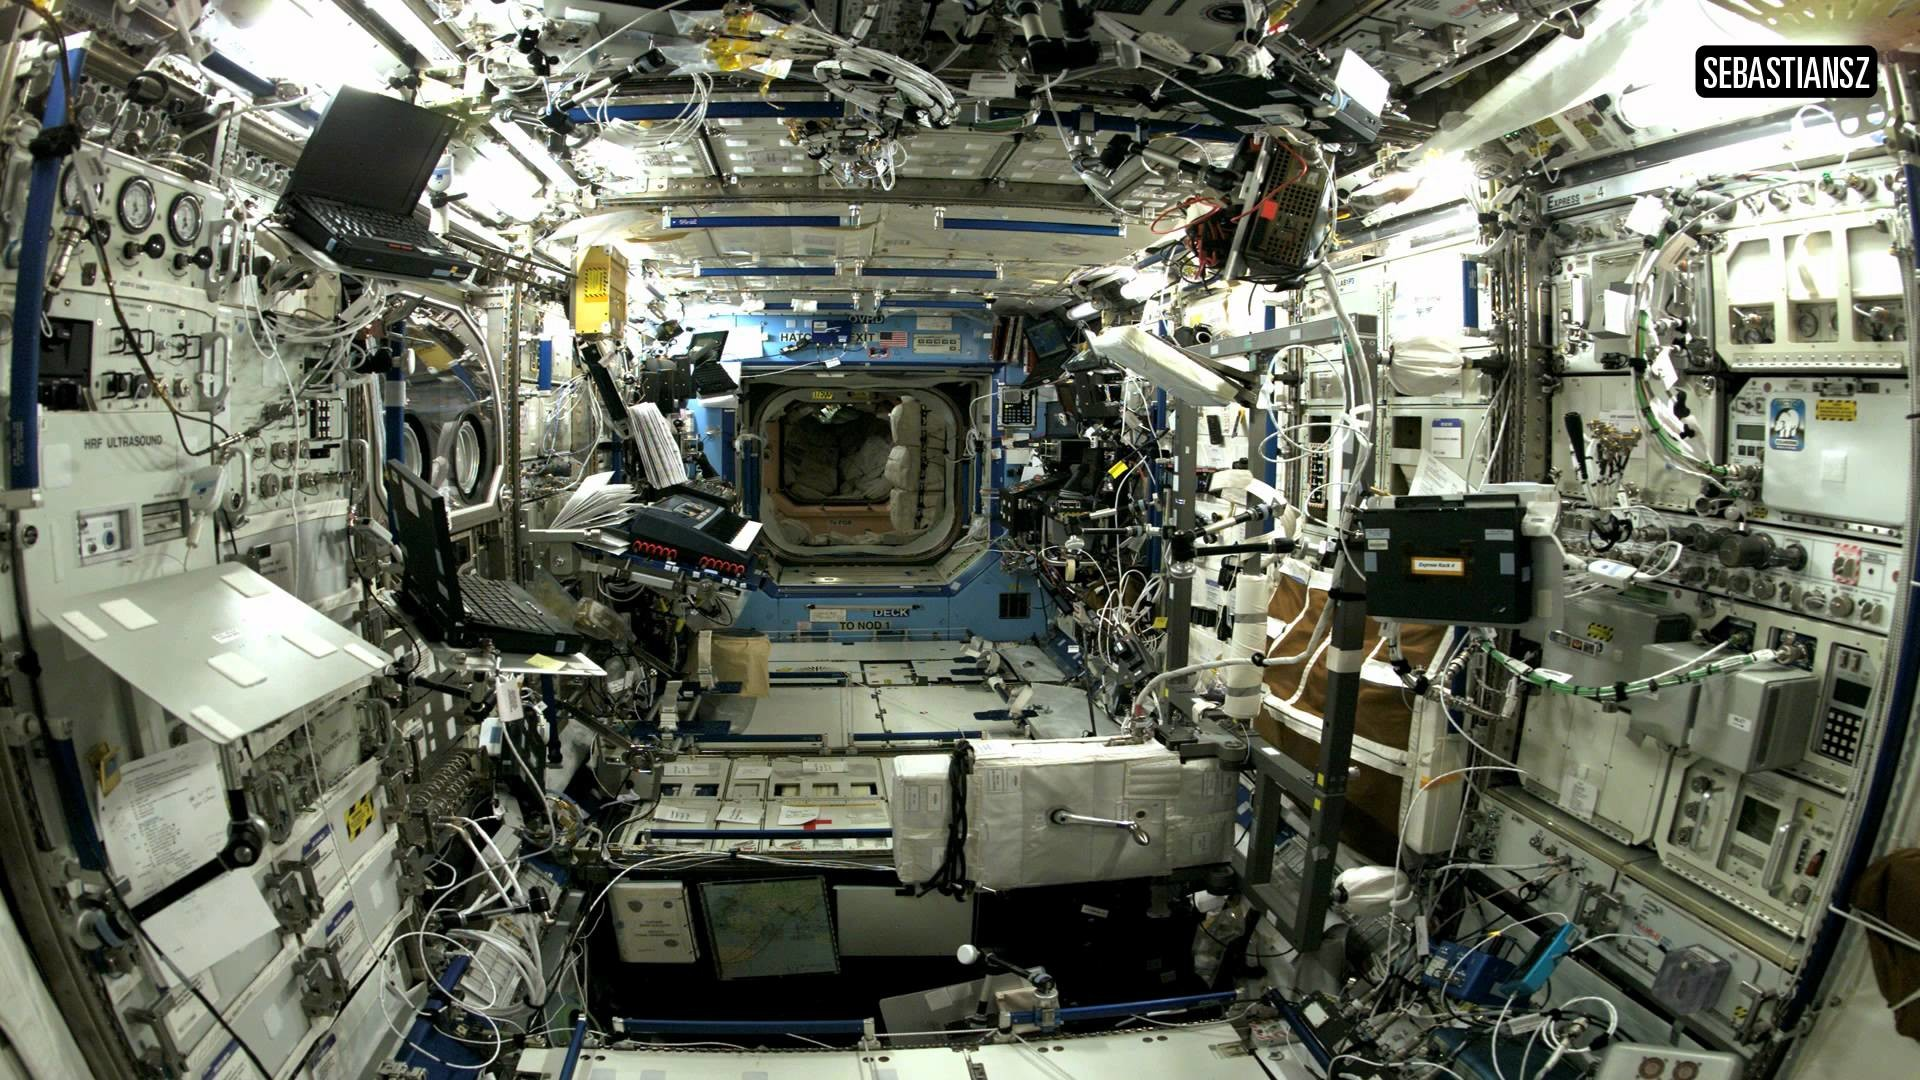 1920x1080 International Space Station Interior - Pics about space